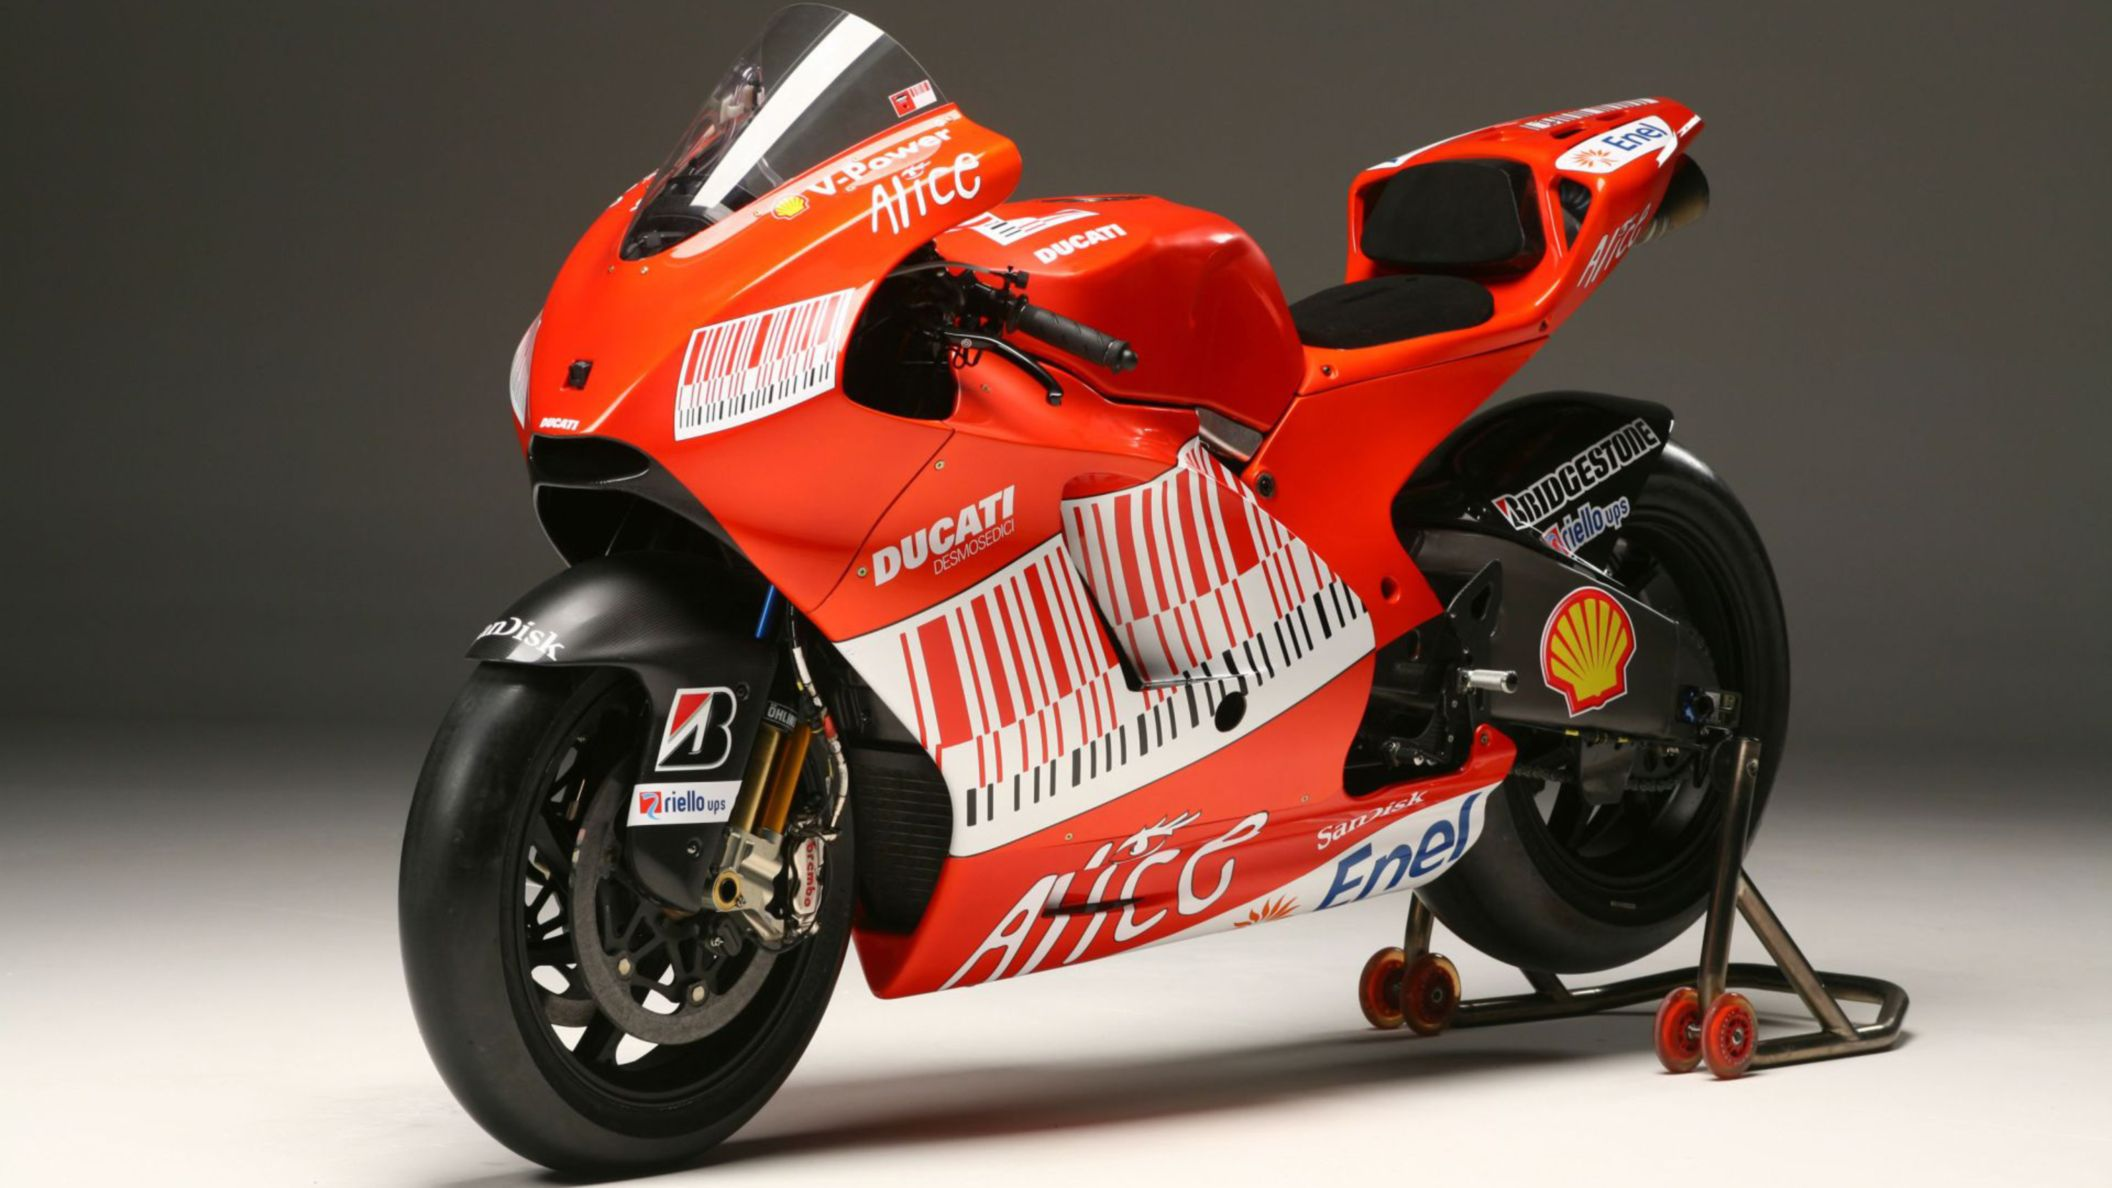 Download free HD Ducati Sports Bike HD Wallpaper, image